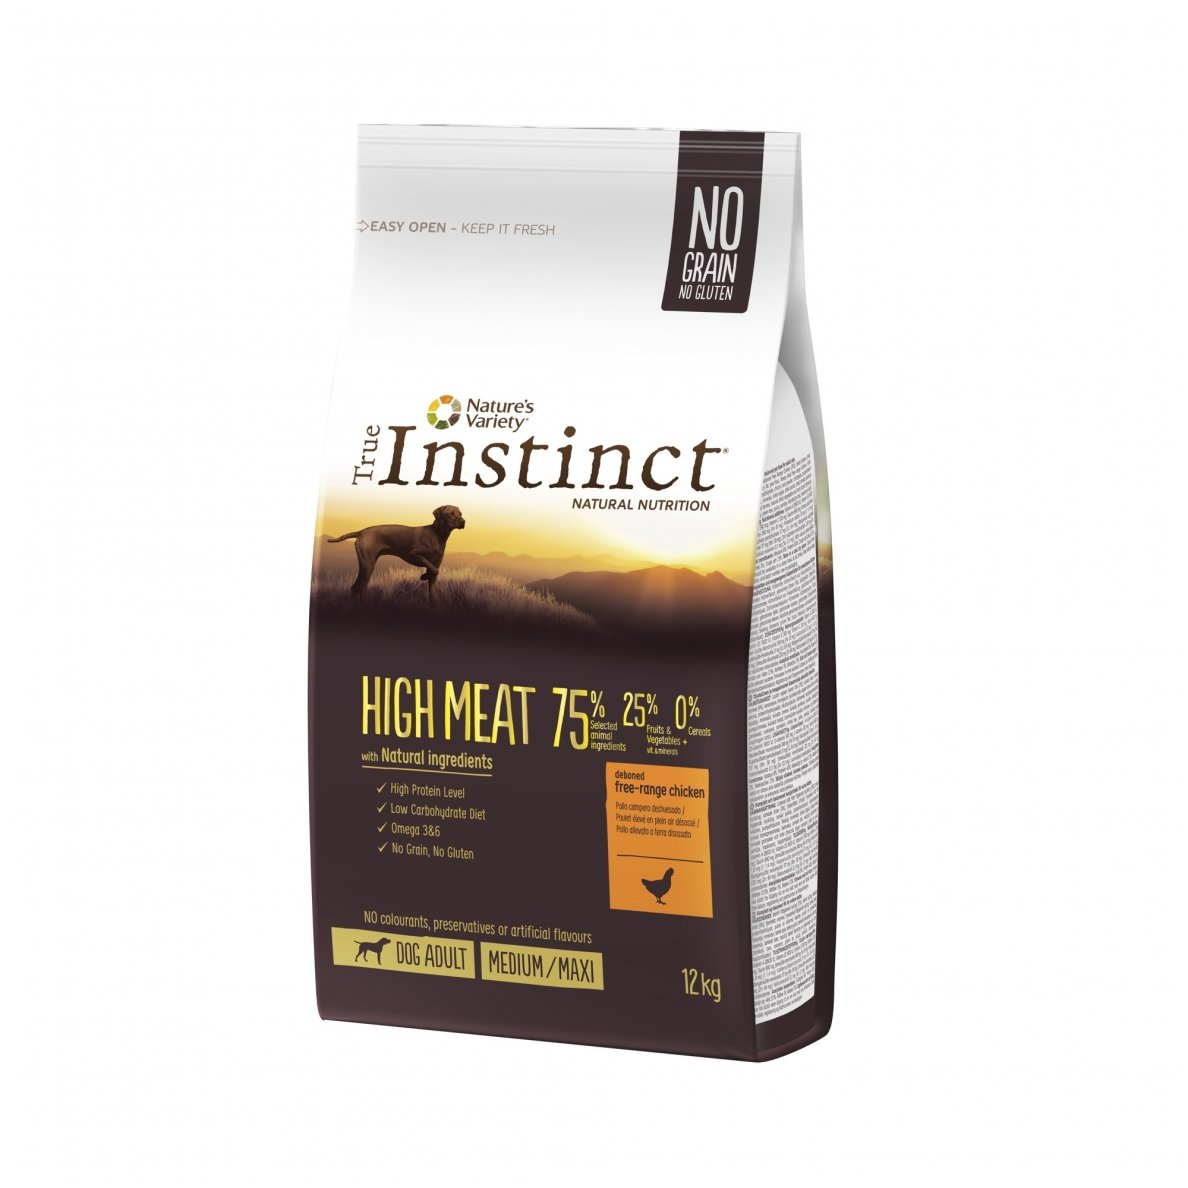 True Instinct HIGH MEAT Medium Maxi adult 12kg